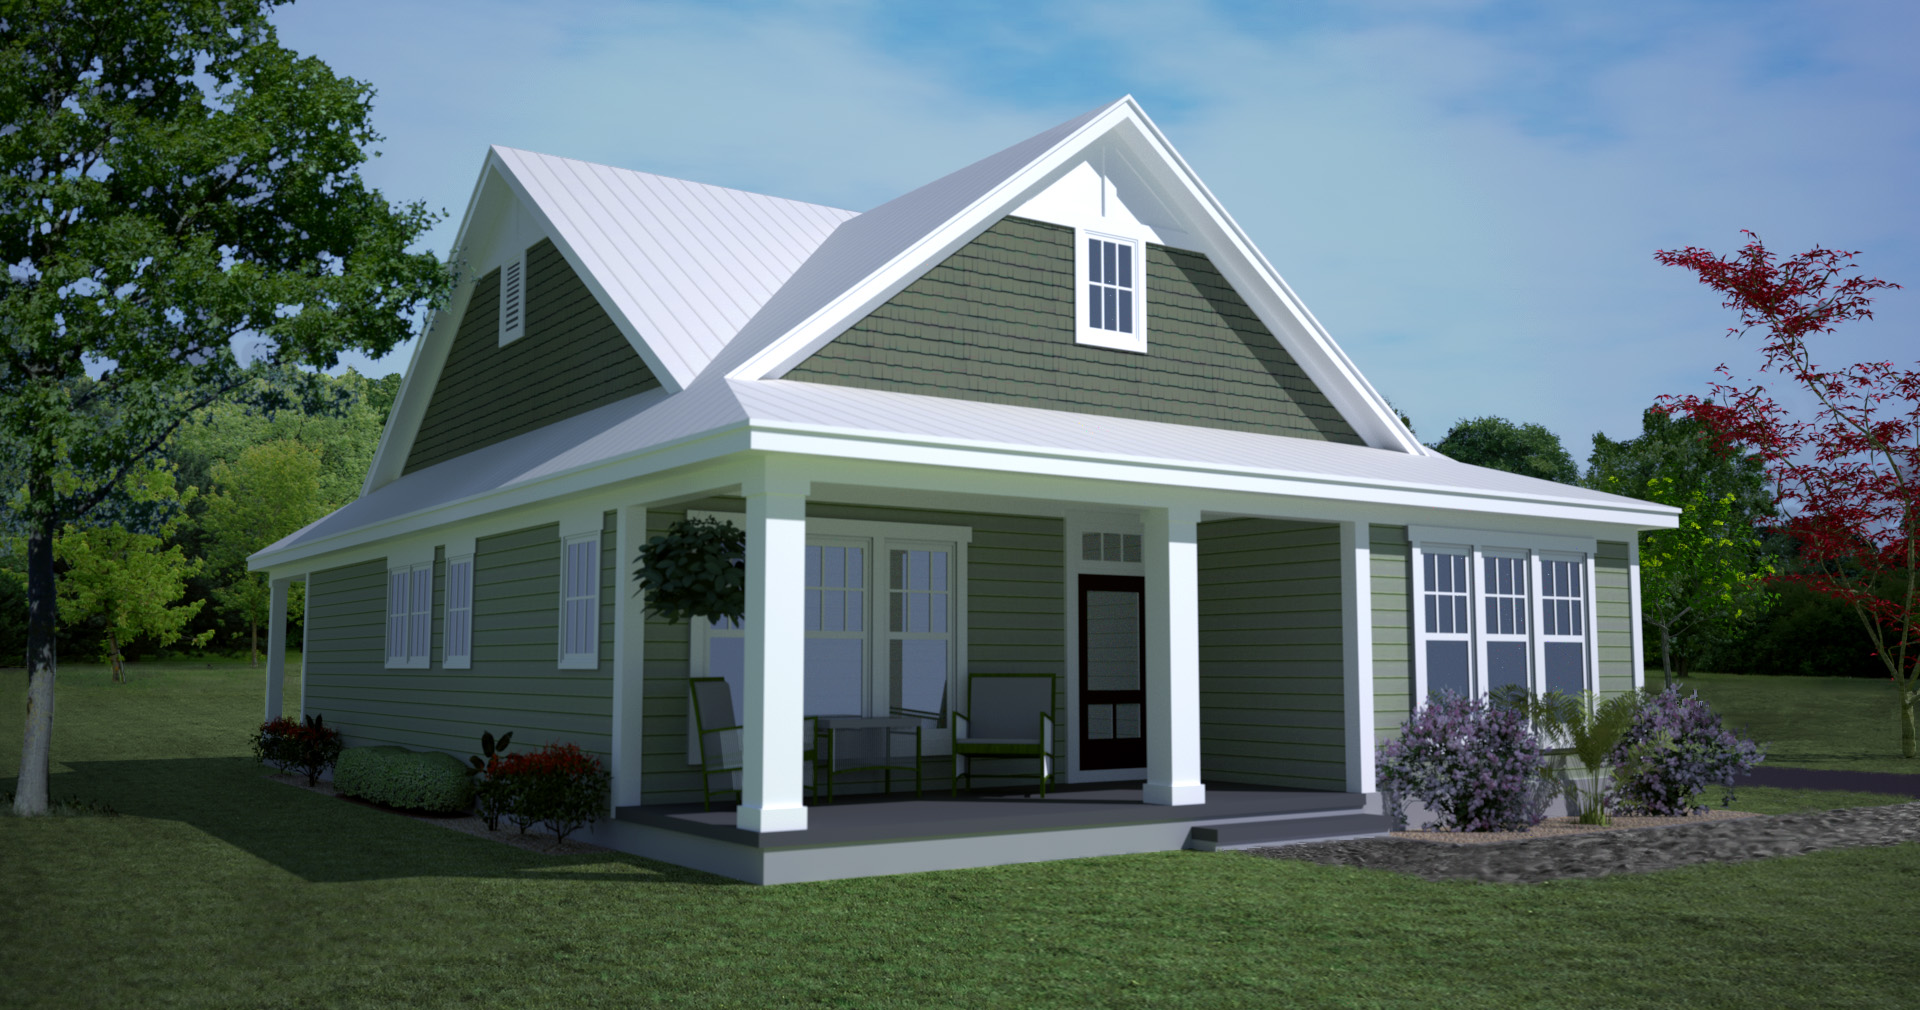 Classic american home styles house design plans for American house plans designs